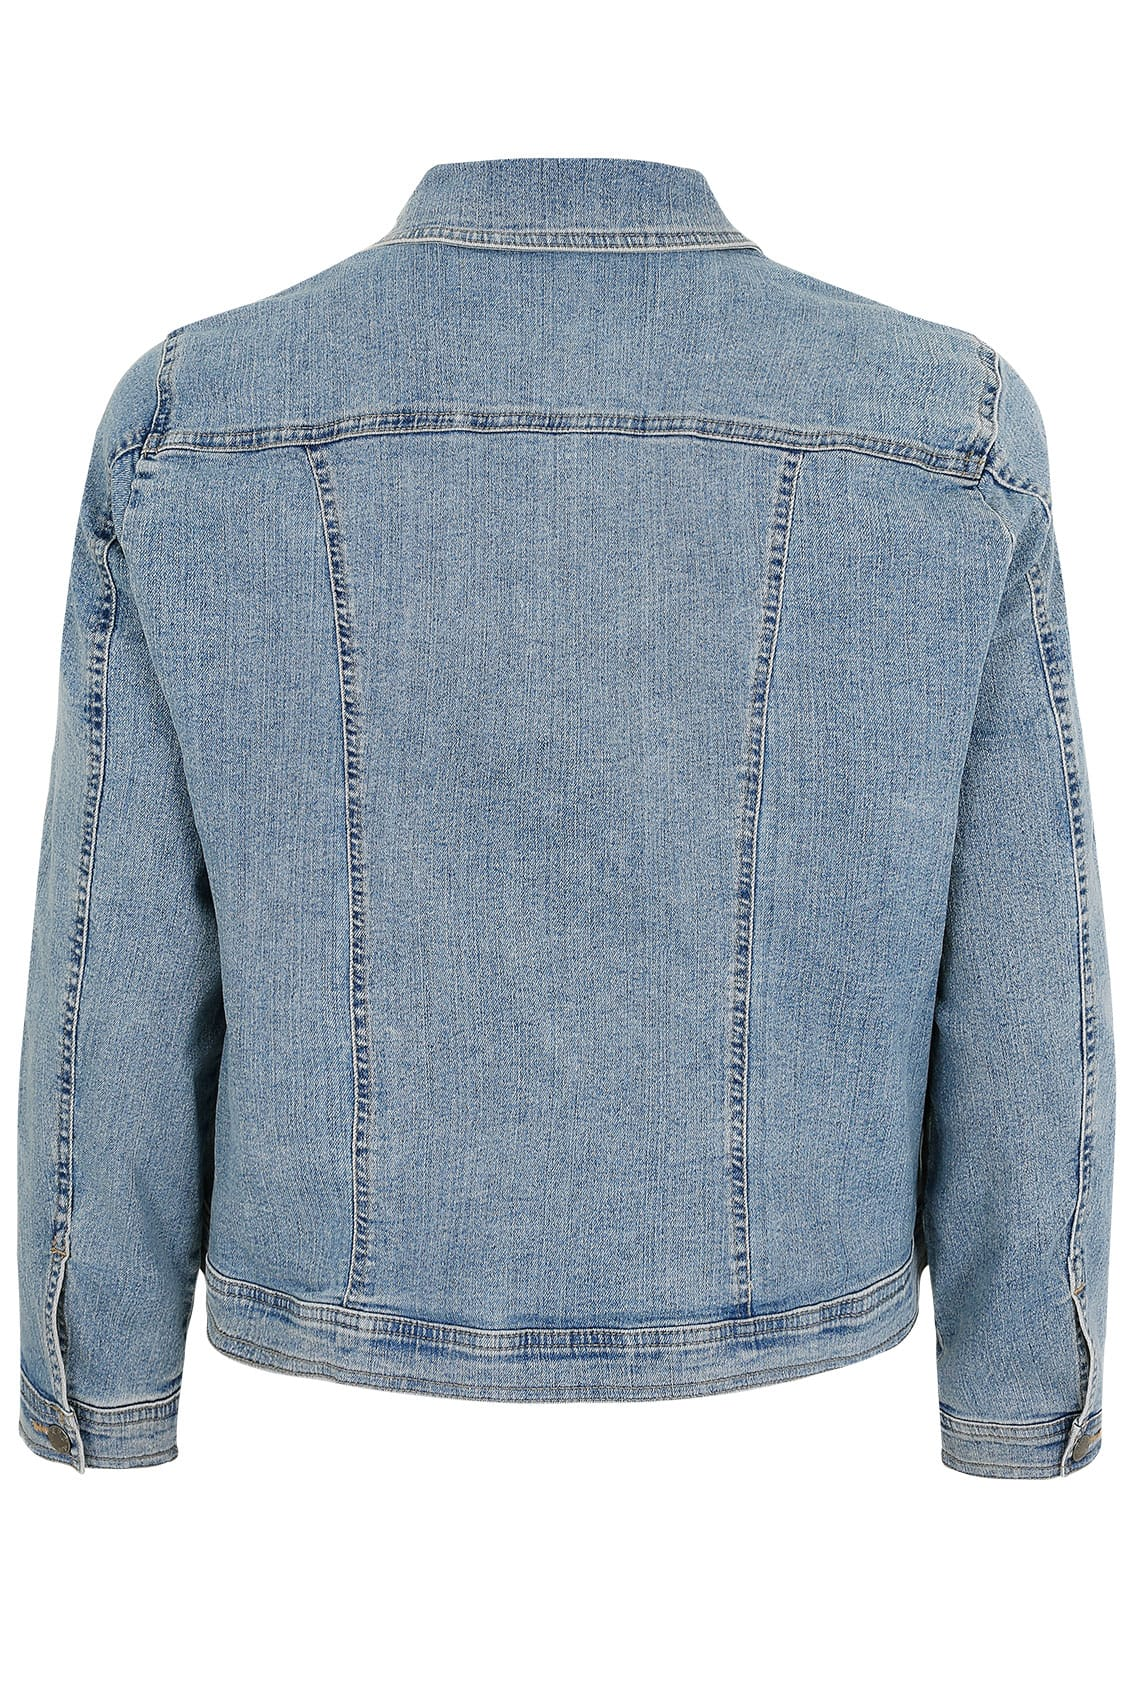 Light_Blue_Oversized_Denim_Jacket_170301_fb43 X Visa Application Form Template on enter japan sample, b1 b2, south africa, german schengen,